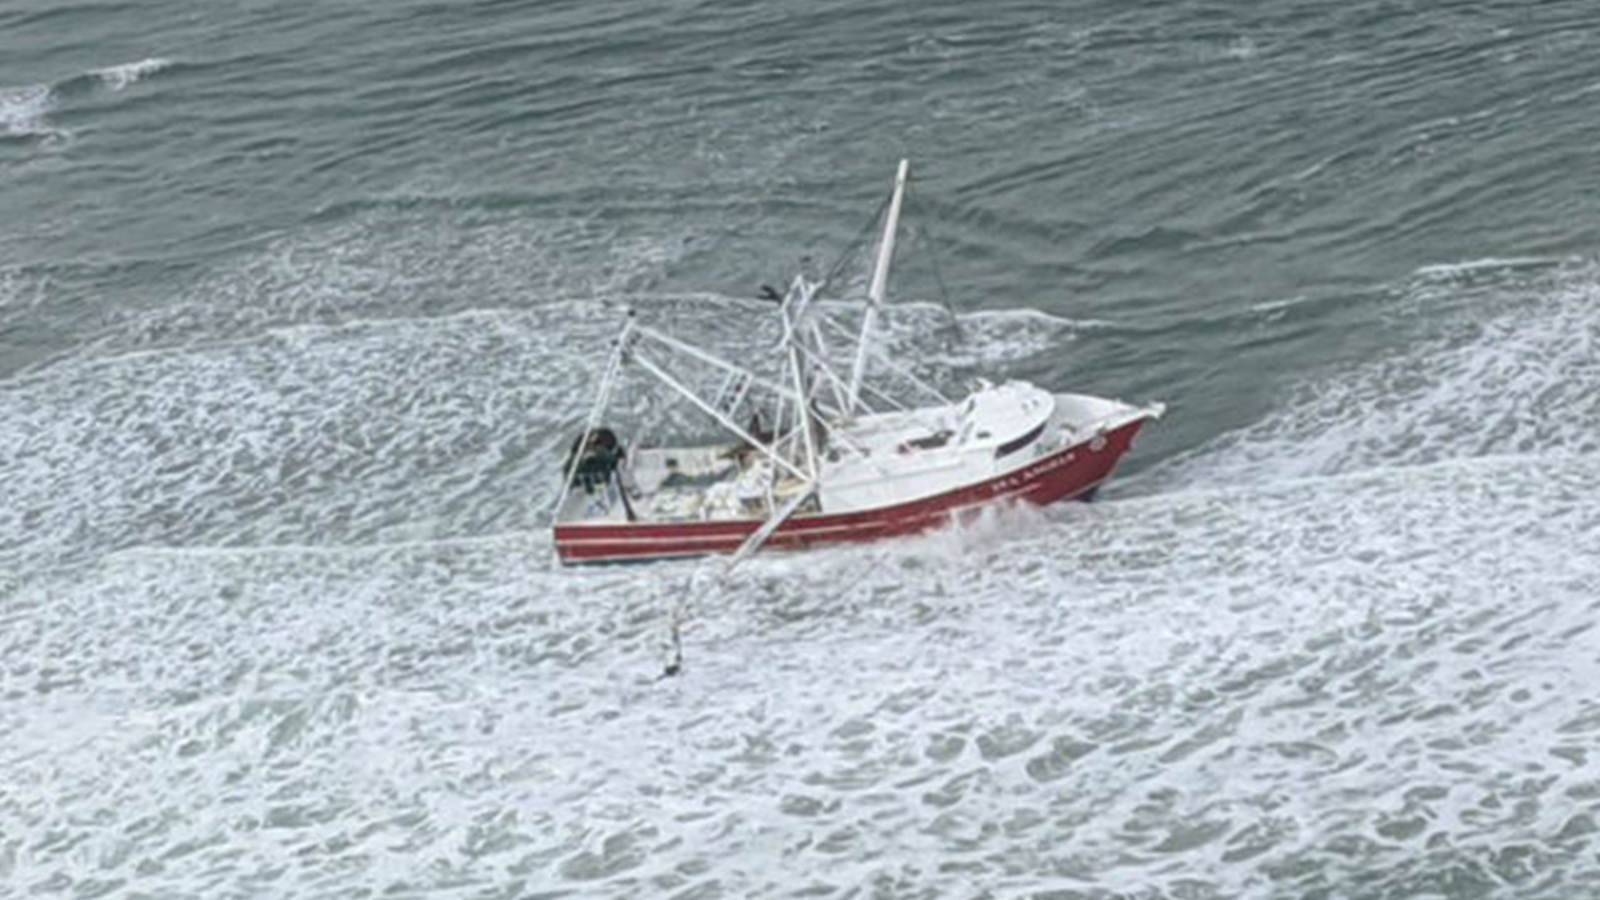 Boat with 15,000 gallons of fuel runs aground near area that could have WWII ordinance